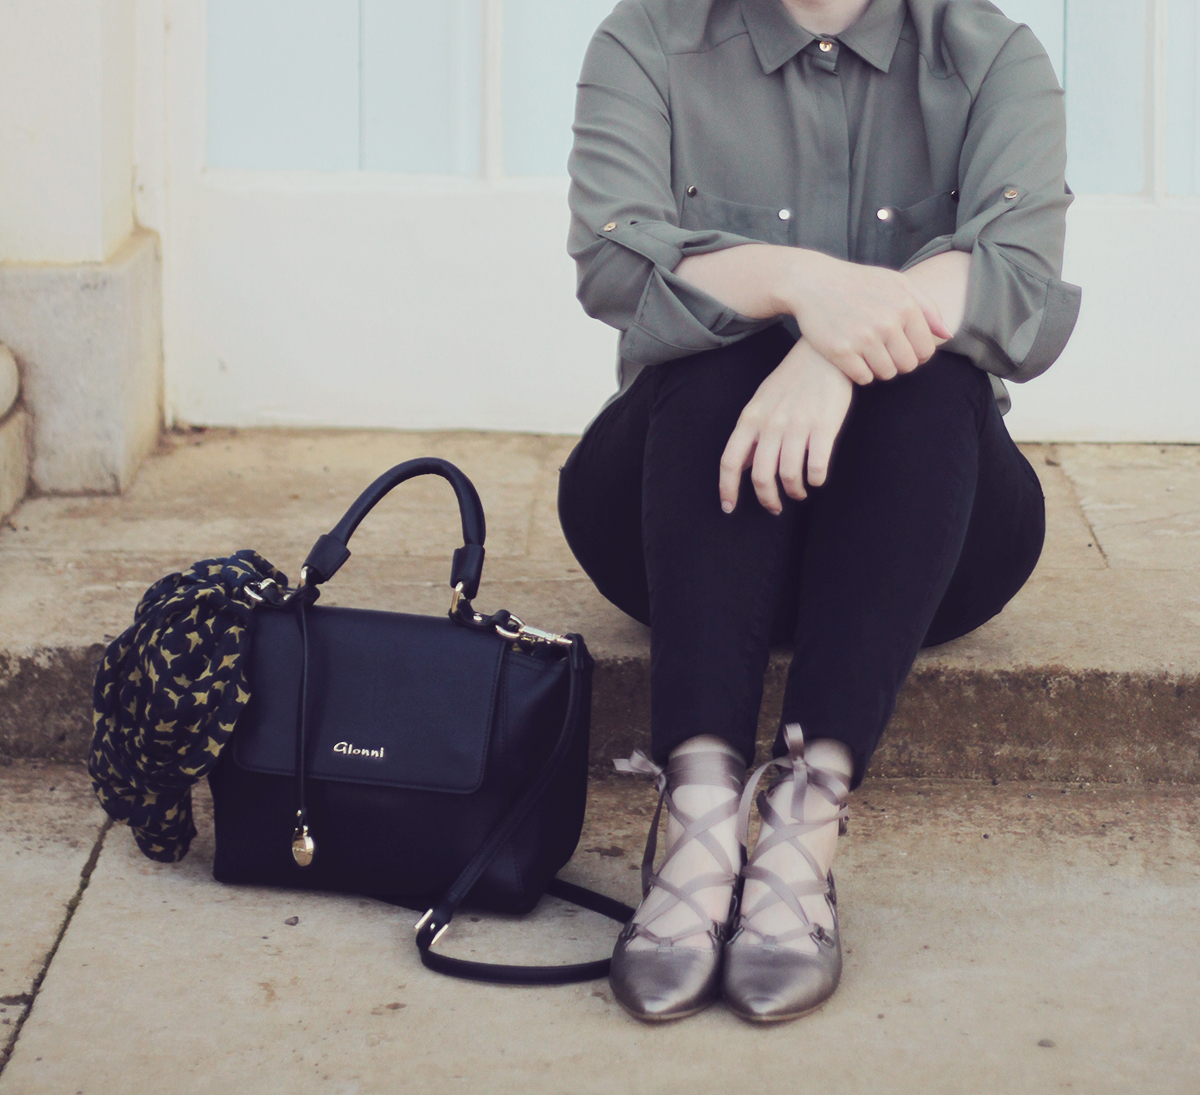 london-ballet-flats-and-jeans-with-bag